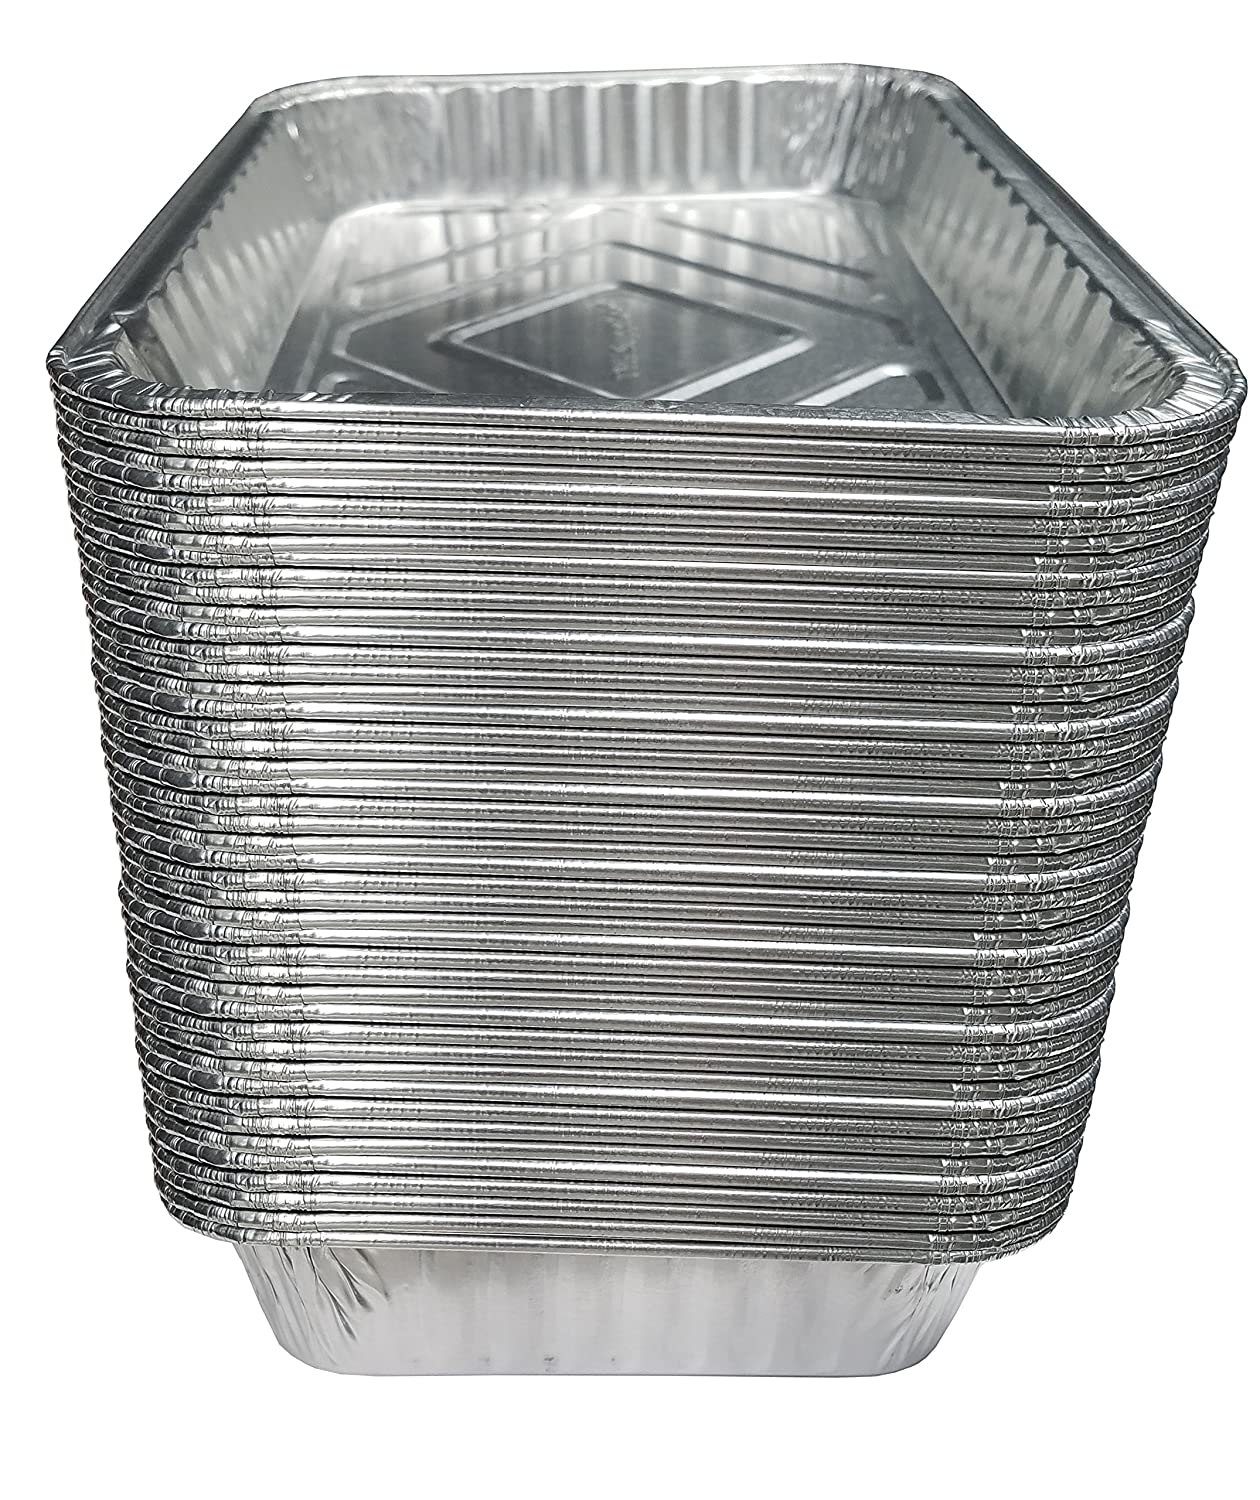 """TYH Supplies Aluminum Foil BBQ Grease Drip Pans for Weber Grills Q, Pulse, Spirit, Spirit II, Genesis II LX 200 and 300 Series Gas Grill 7.5"""" x 5"""", 50-Pack"""